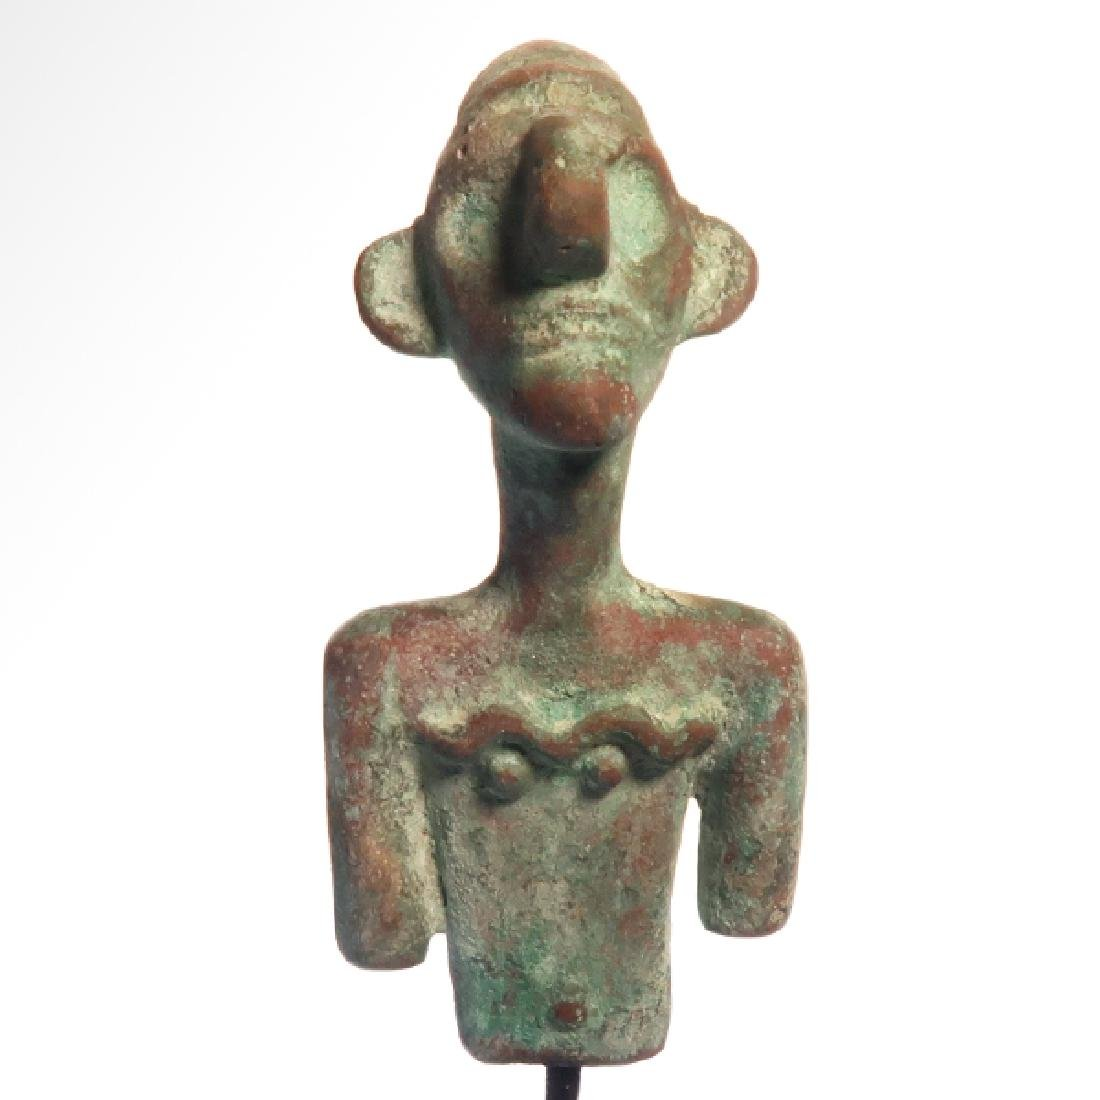 Canaanite Bust of a Deity, c. 2nd Millennium BC